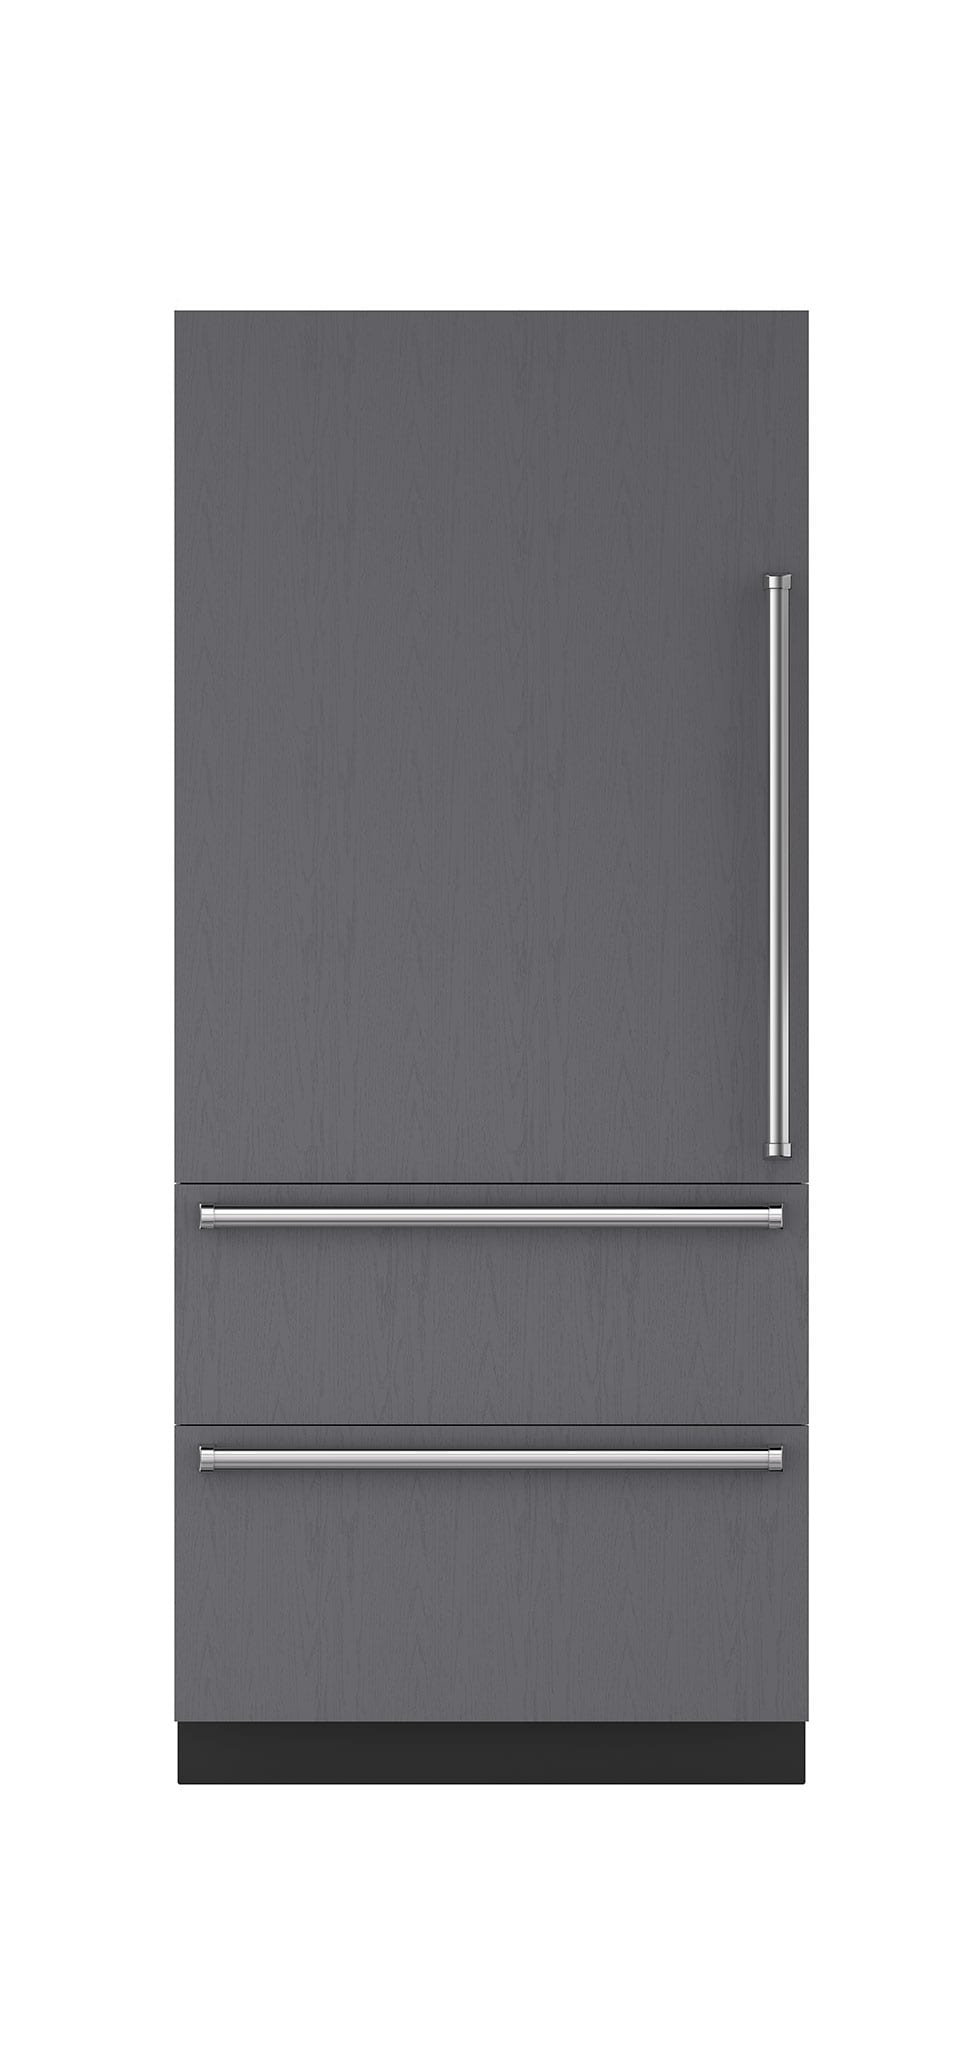 Sub Zero 36 Integrated Over And Under Refrigerator Freezer With Internal Dispenser Ice Maker Panel Ready It 36ciid